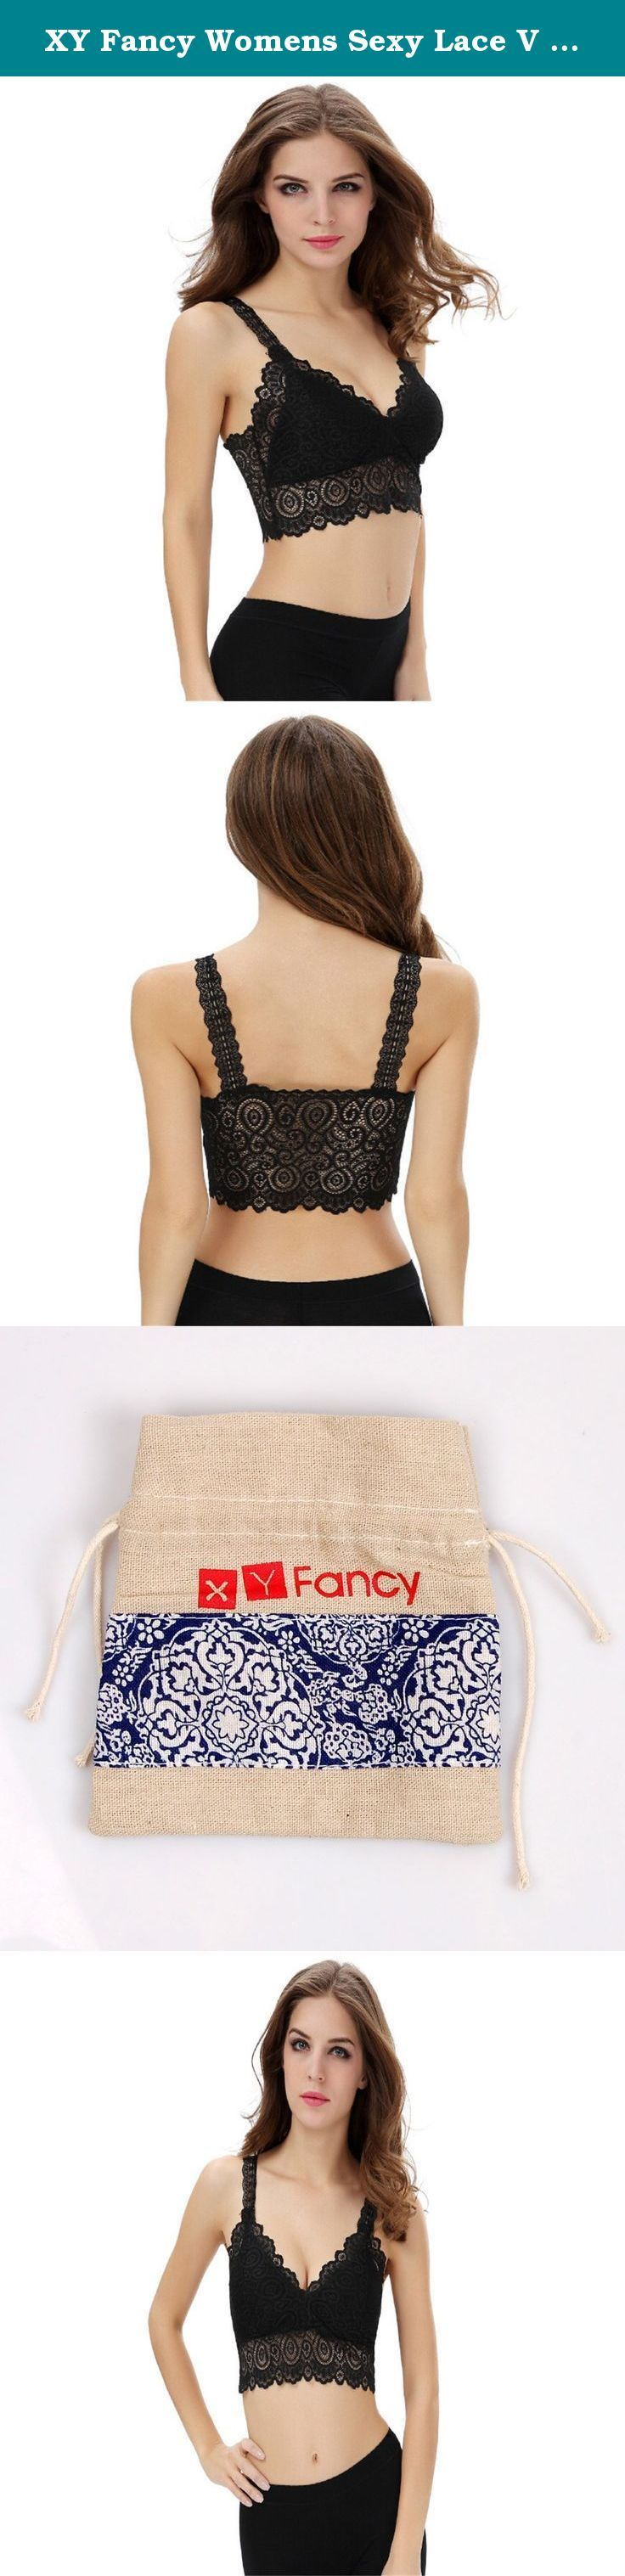 XY Fancy Womens Sexy Lace V Neck Bralette Tank Top Half Cami Sports Bra. This is a comfortable crop tops for summer, has excellent stretch, Sweat absorption and flash drying, Perfect to match any backless dresses.